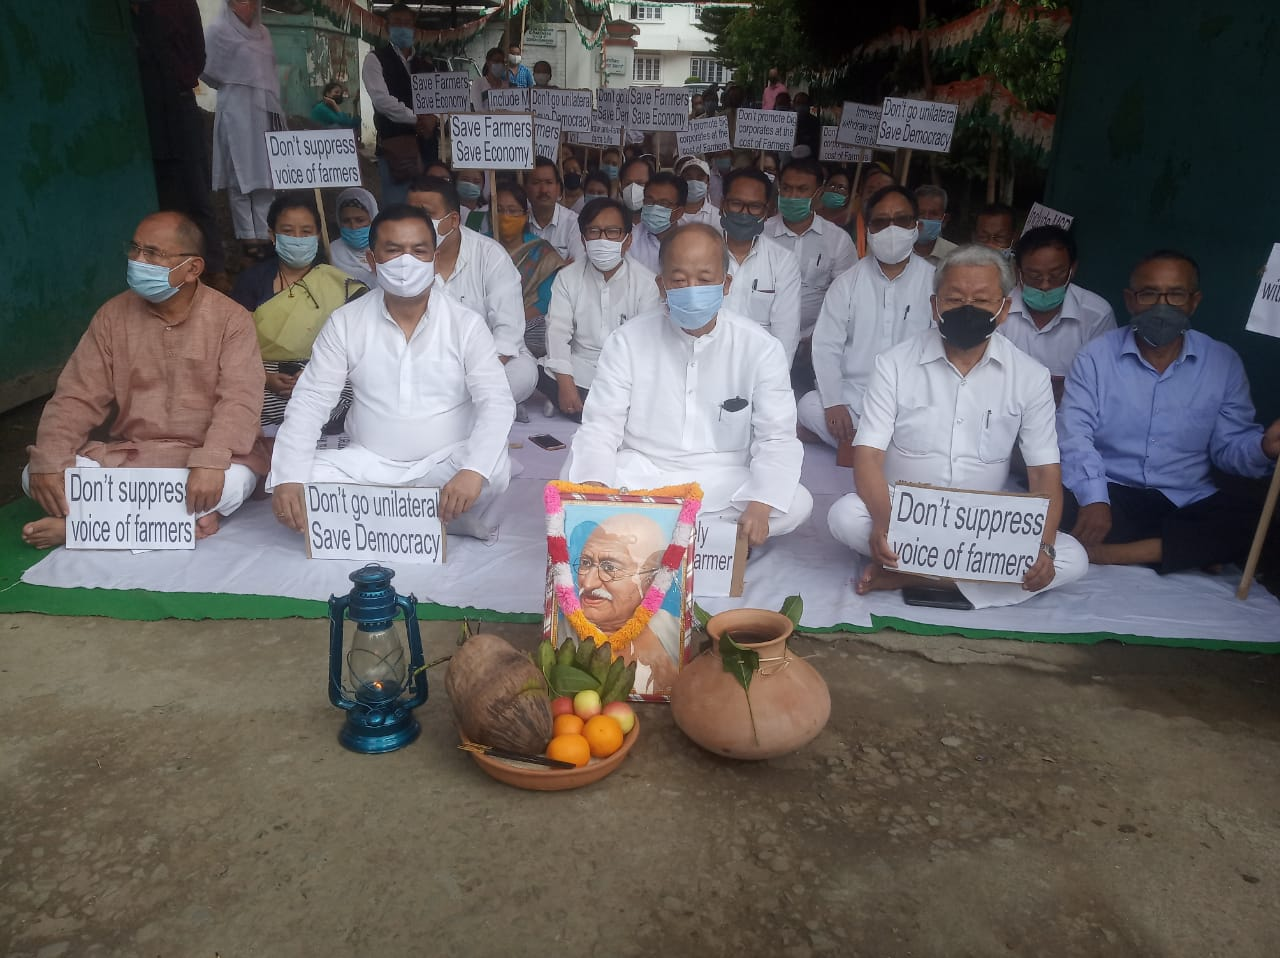 MPCC organizes peaceful sit-in-protest against Farm Bill, calls on all farmers to protest the bill